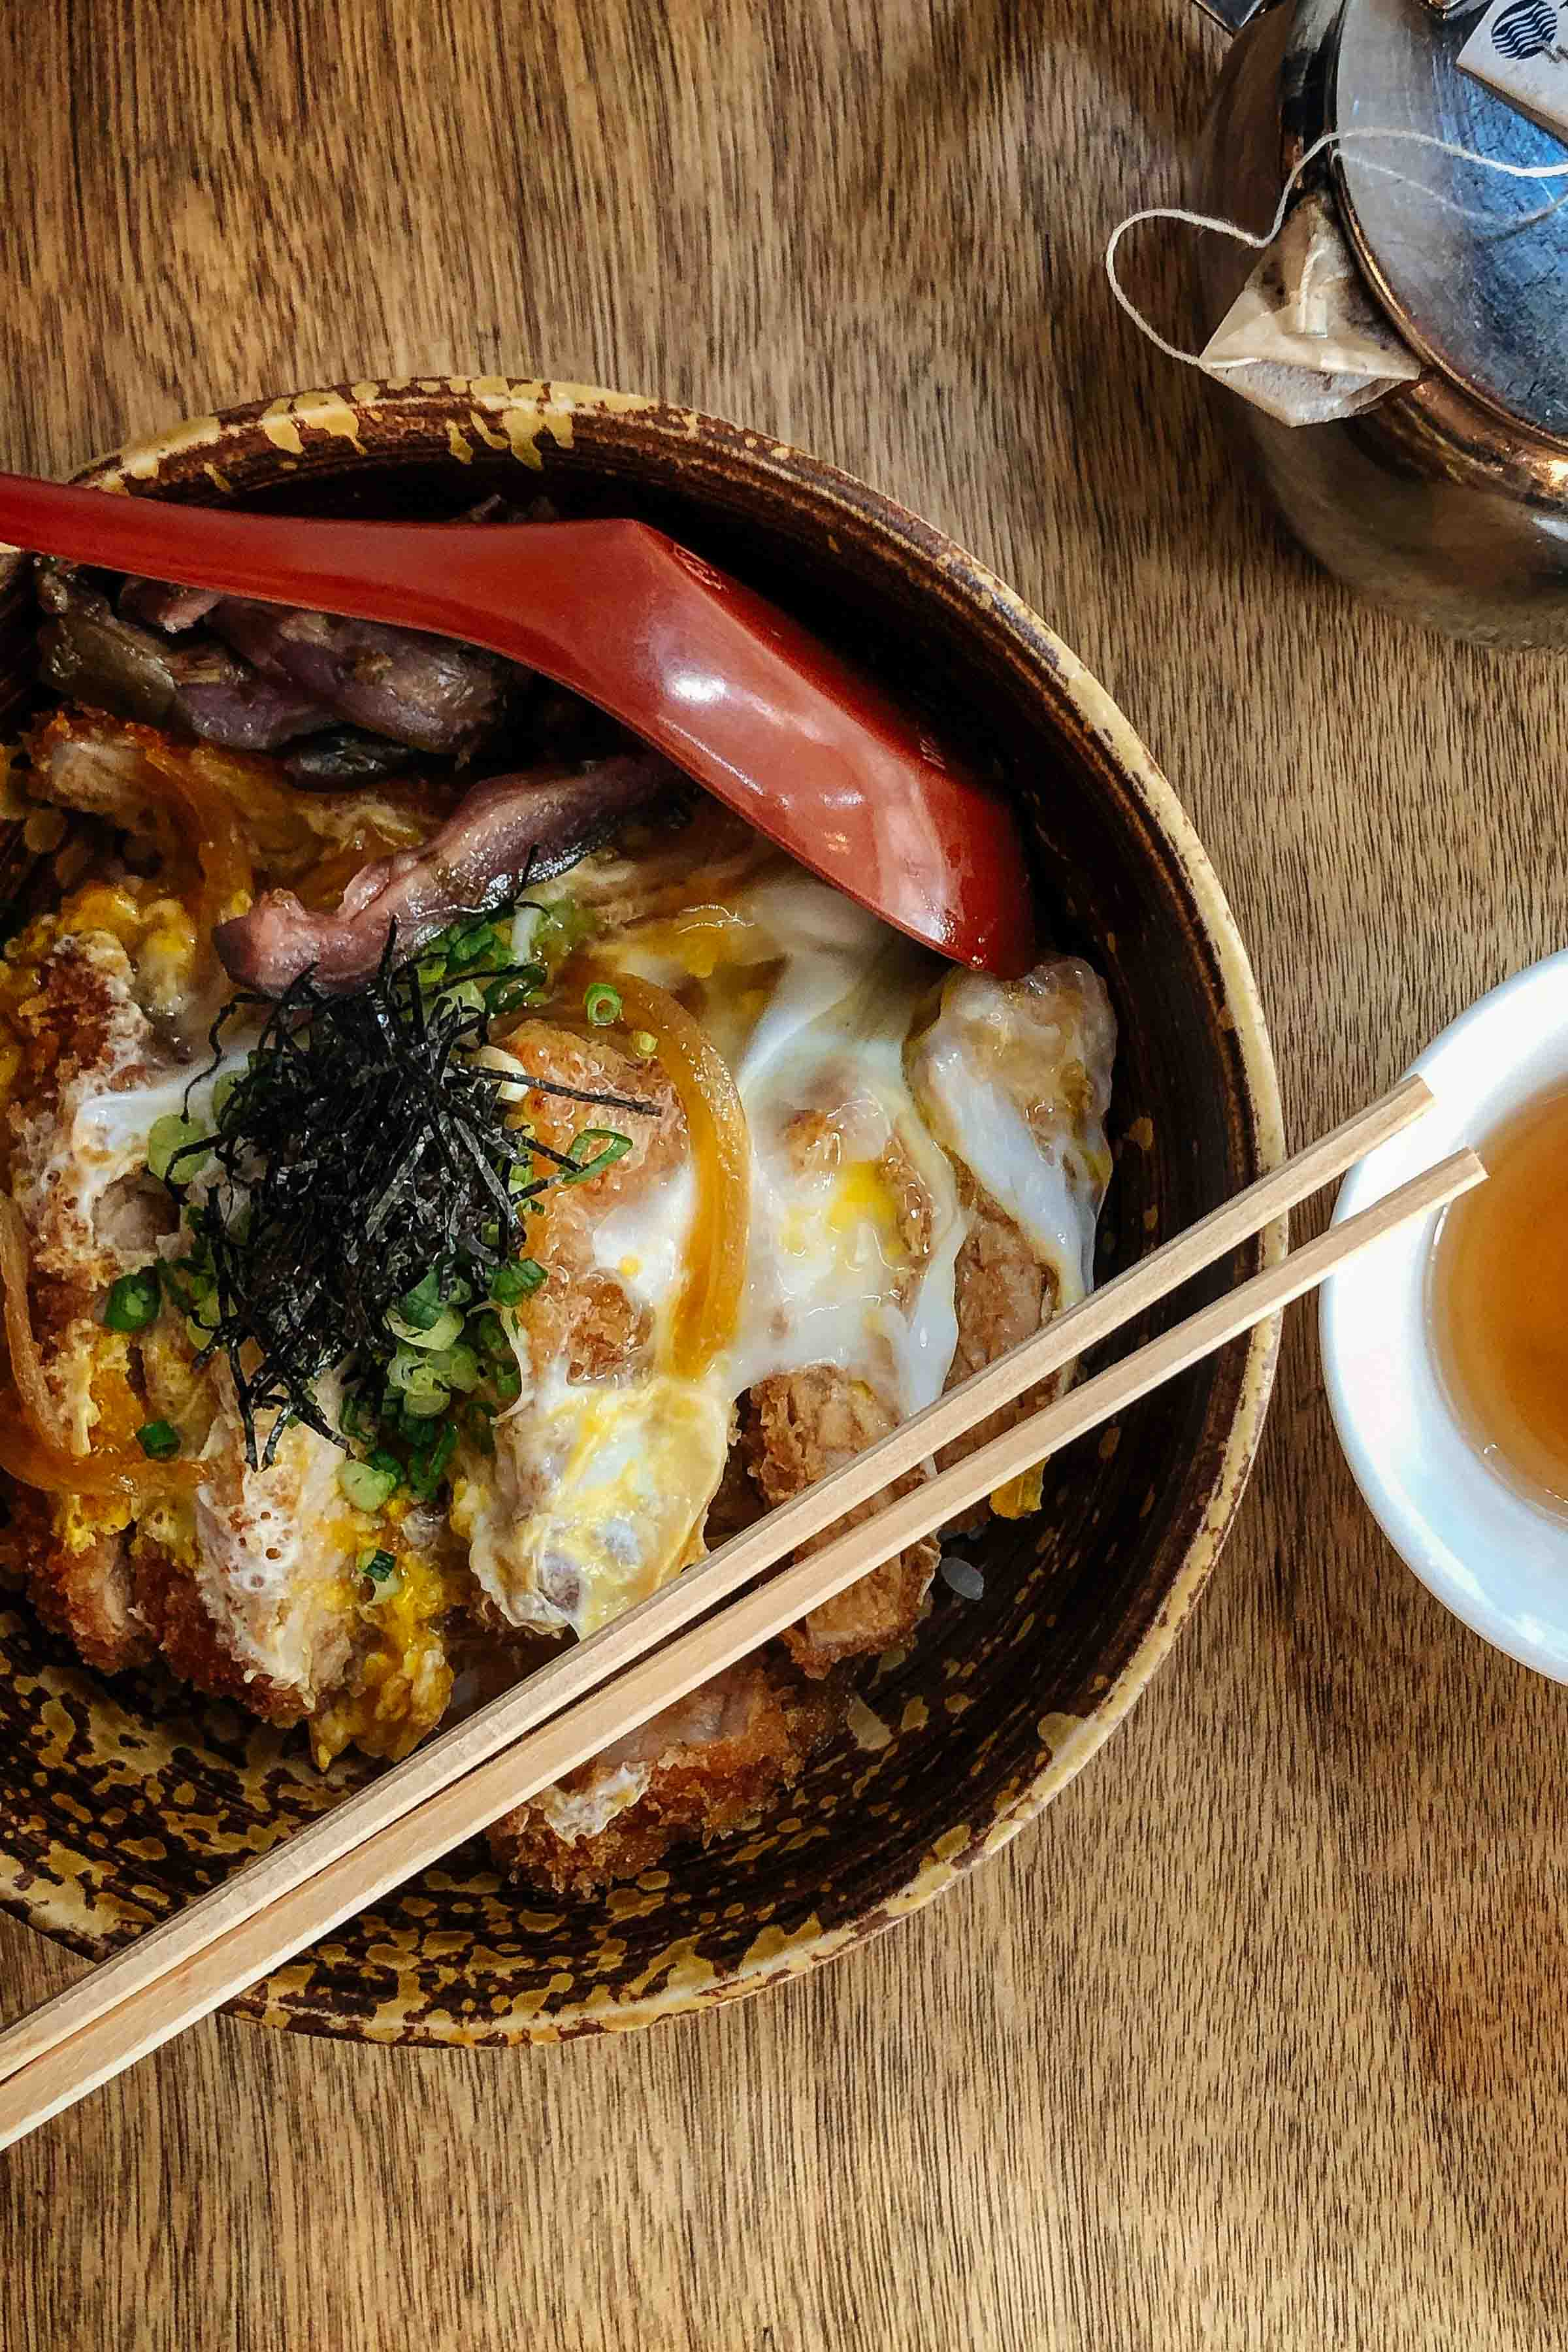 For one of the best restaurants in Paris try Kunitoraya by Kate Leahy